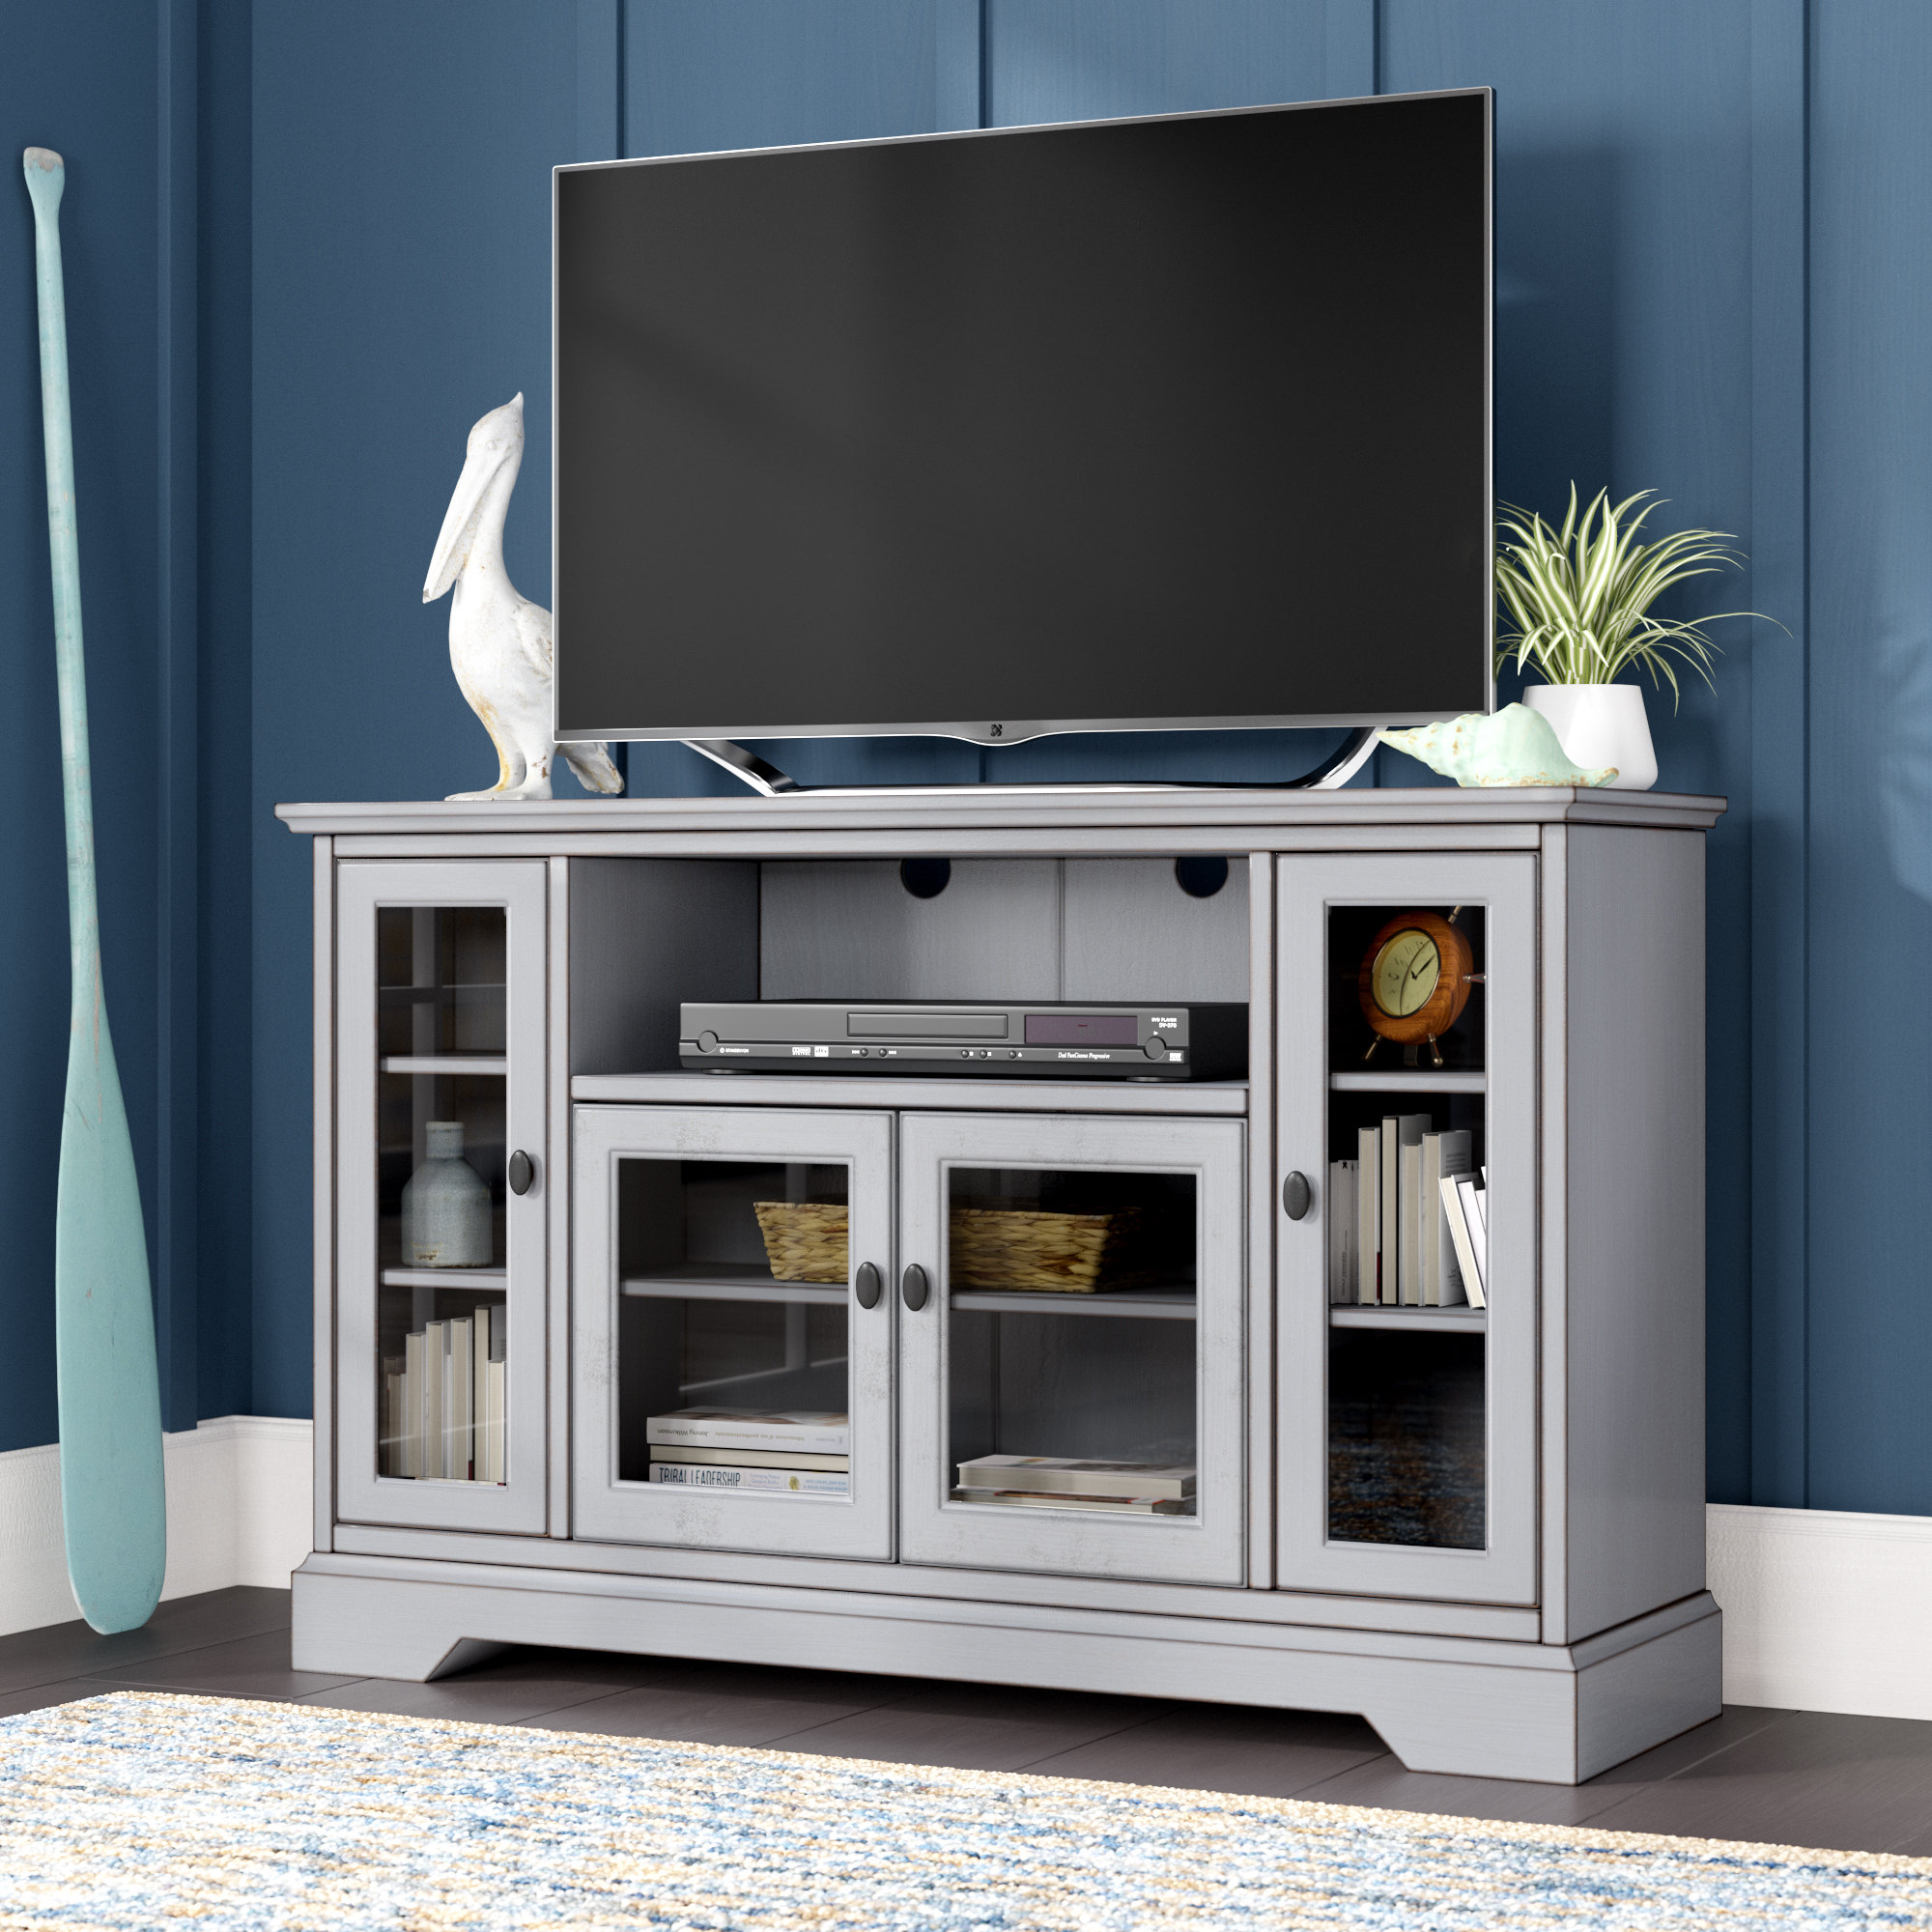 Tv Stands | Joss & Main Throughout Annabelle Cream 70 Inch Tv Stands (View 23 of 30)